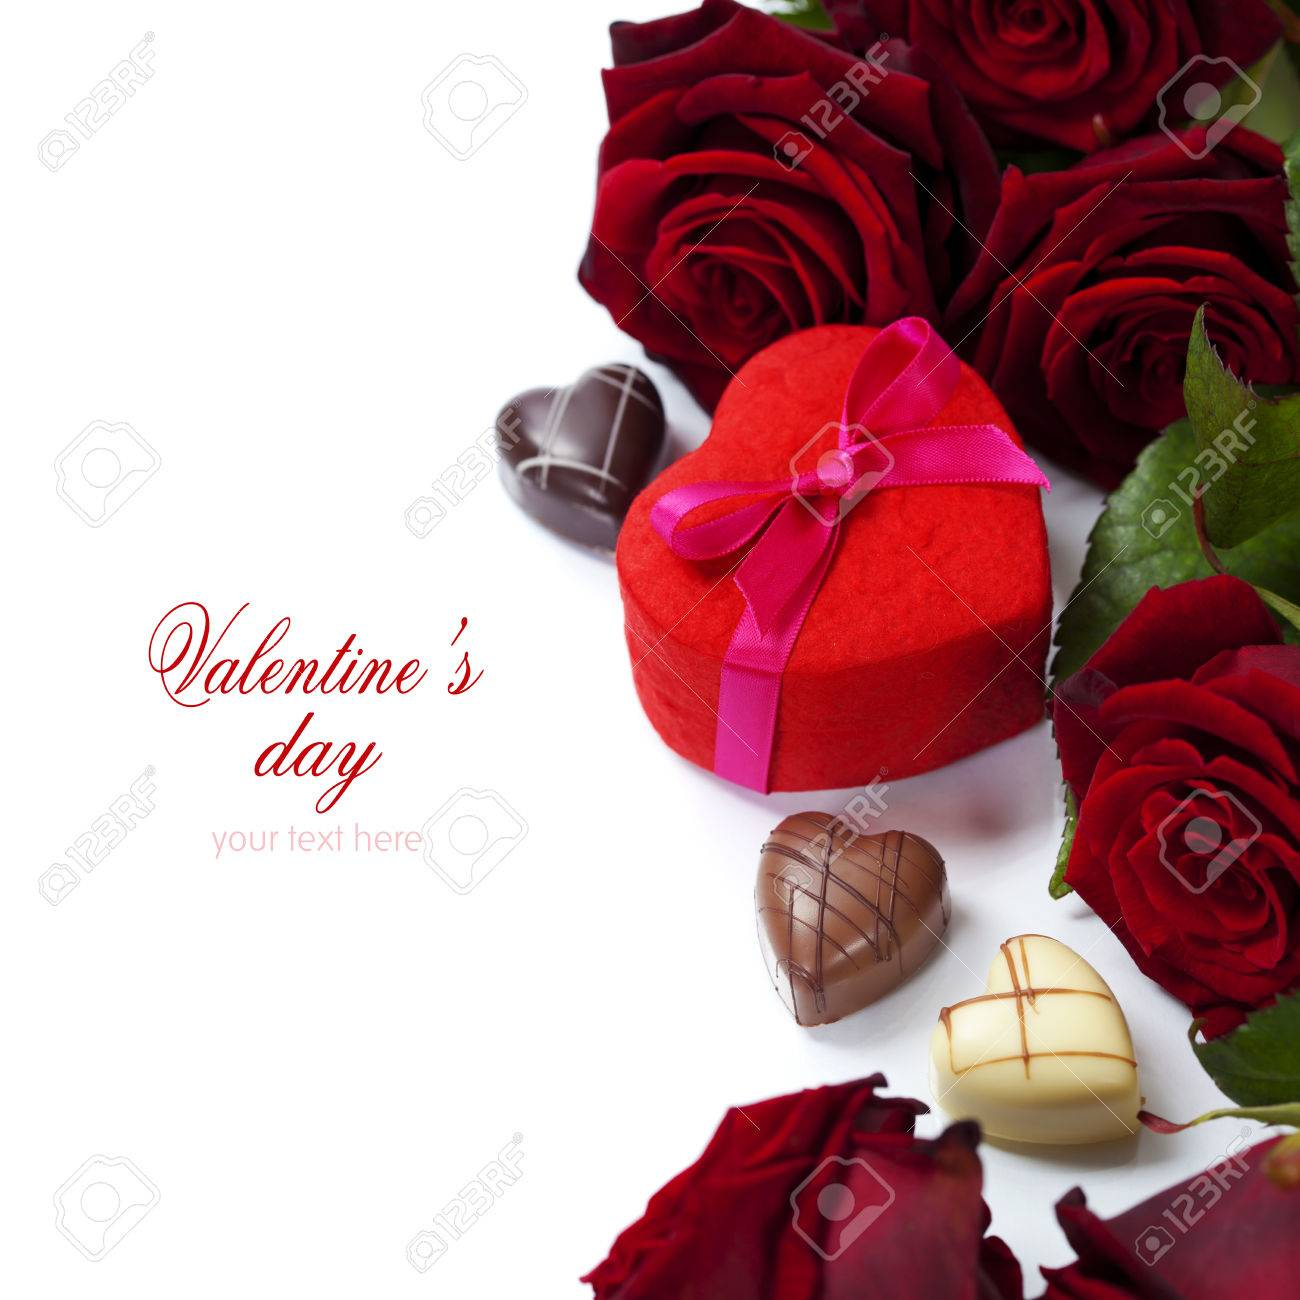 St Valentine S Day Roses And Chocolate Over White With Easy